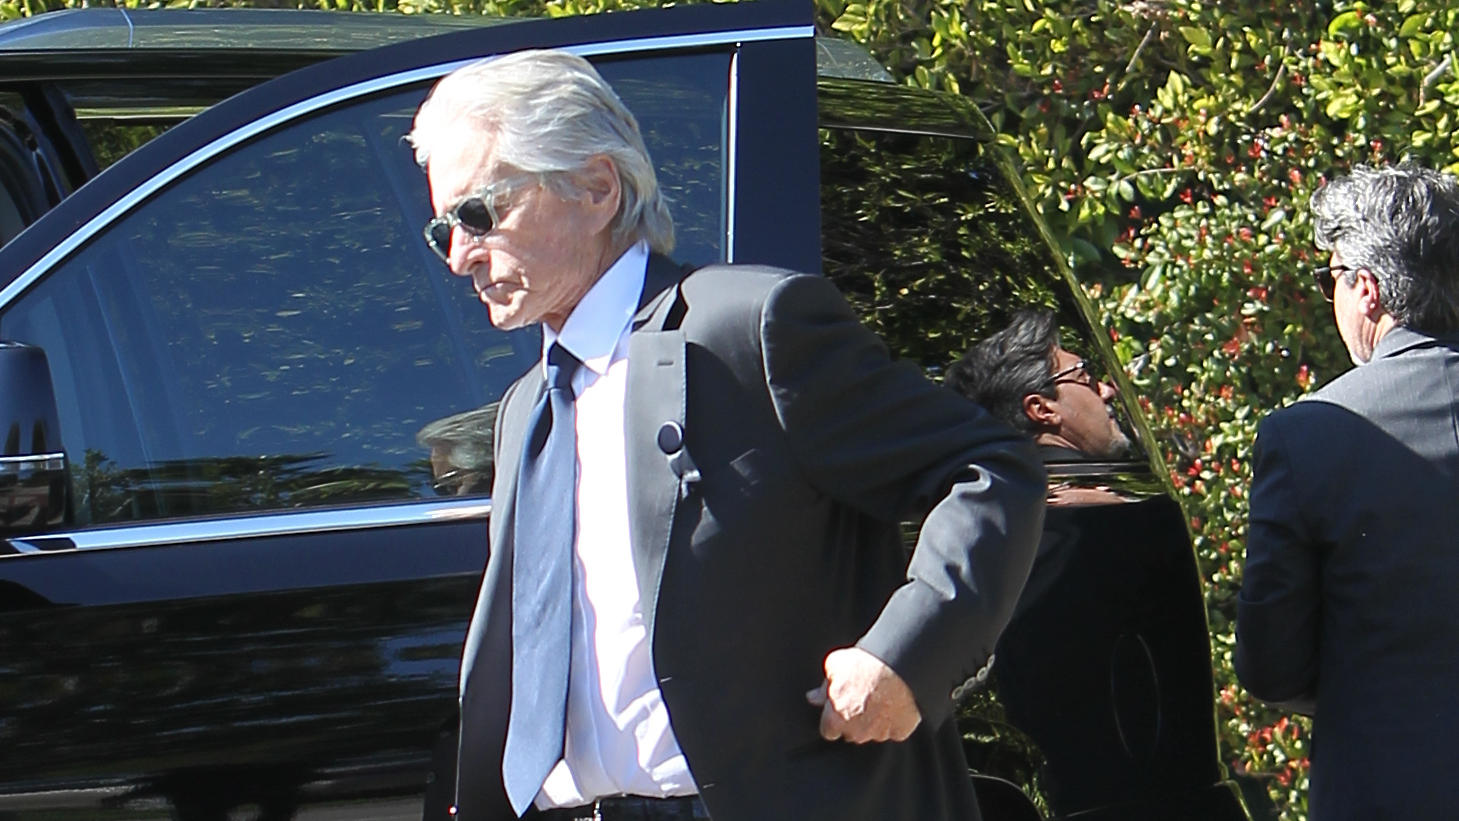 Michael Douglas is seen arriving to the Kirk Douglas' Memorial at the Hollywood legends Beverly Hills home after his intimate funeral in LA.Pictured: Michael DouglasRef: SPL5146869 070220 NON-EXCLUSIVEPicture by: SplashNews.comSplash News and Picture